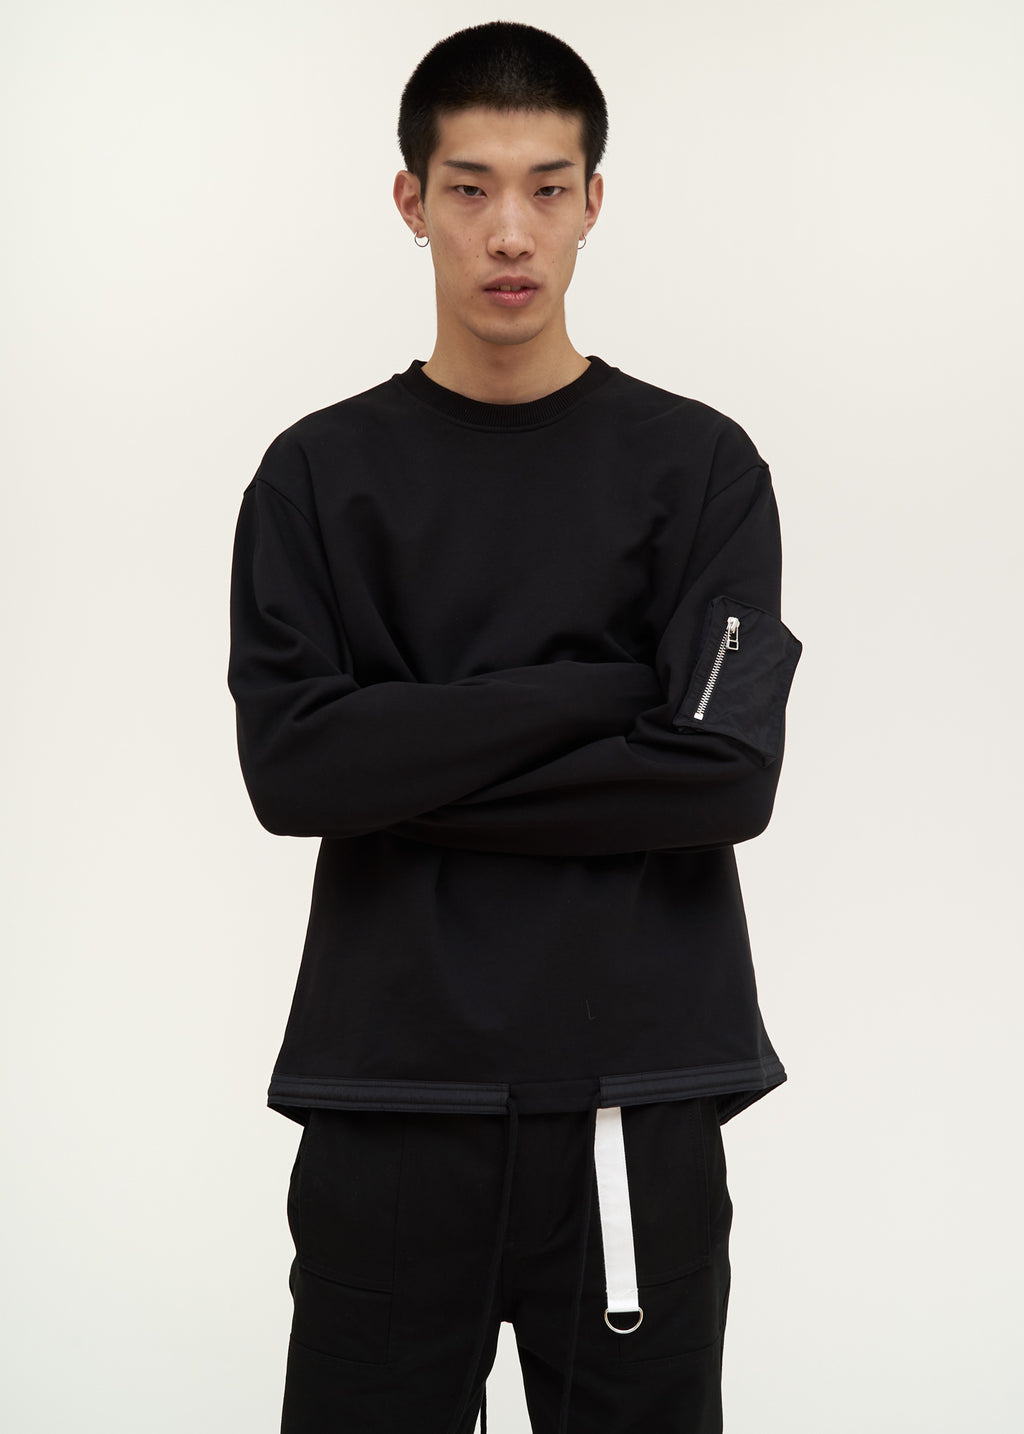 Helmut Lang, Black Fishtail Crewneck, 017 Shop